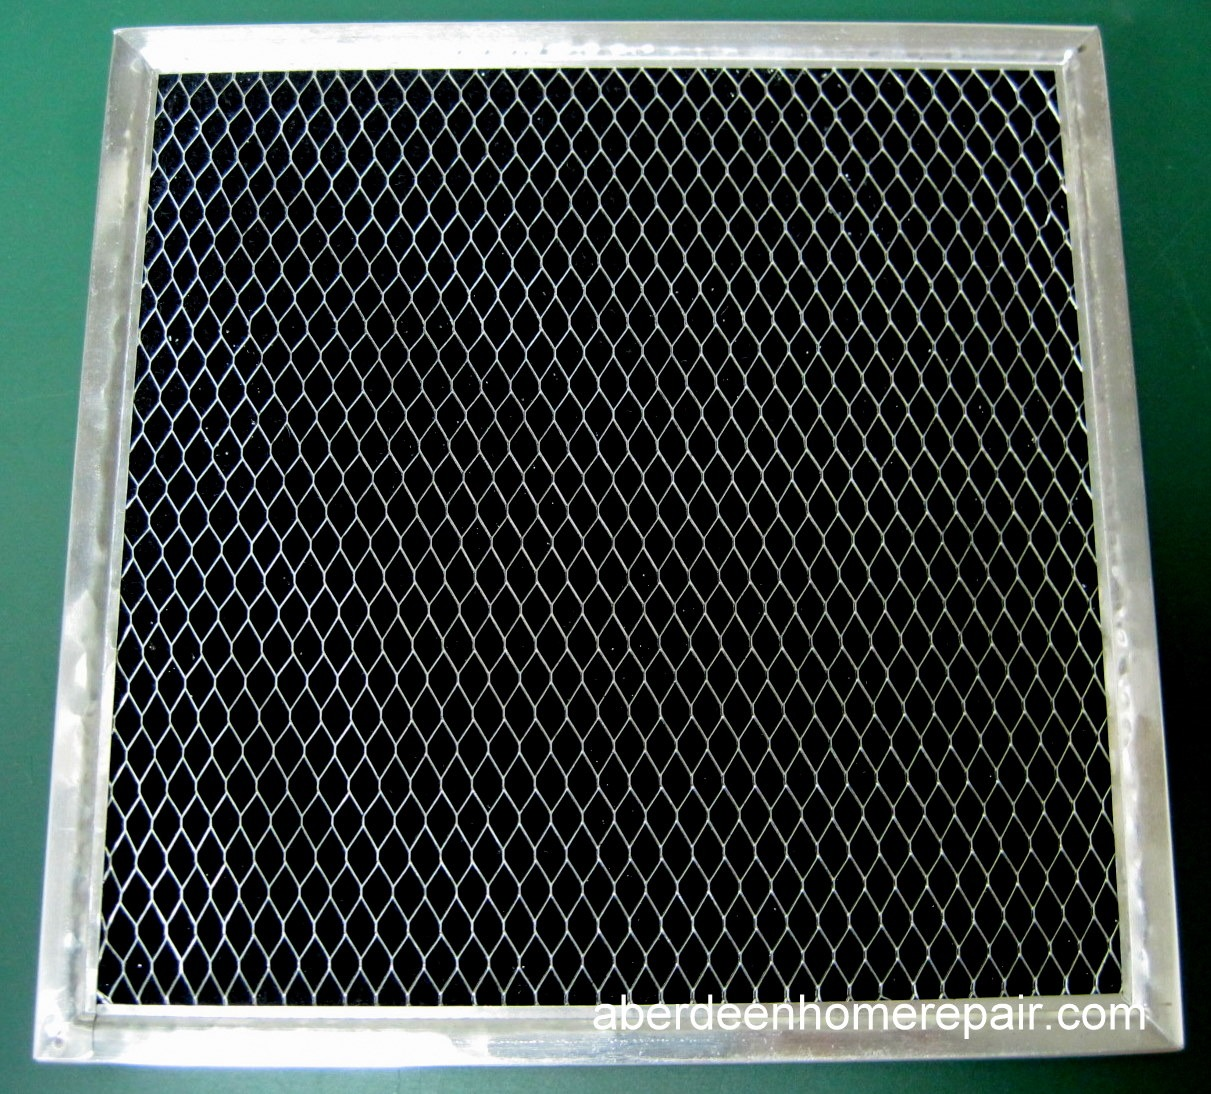 BCC0246-00 Ventline charcoal grease filter